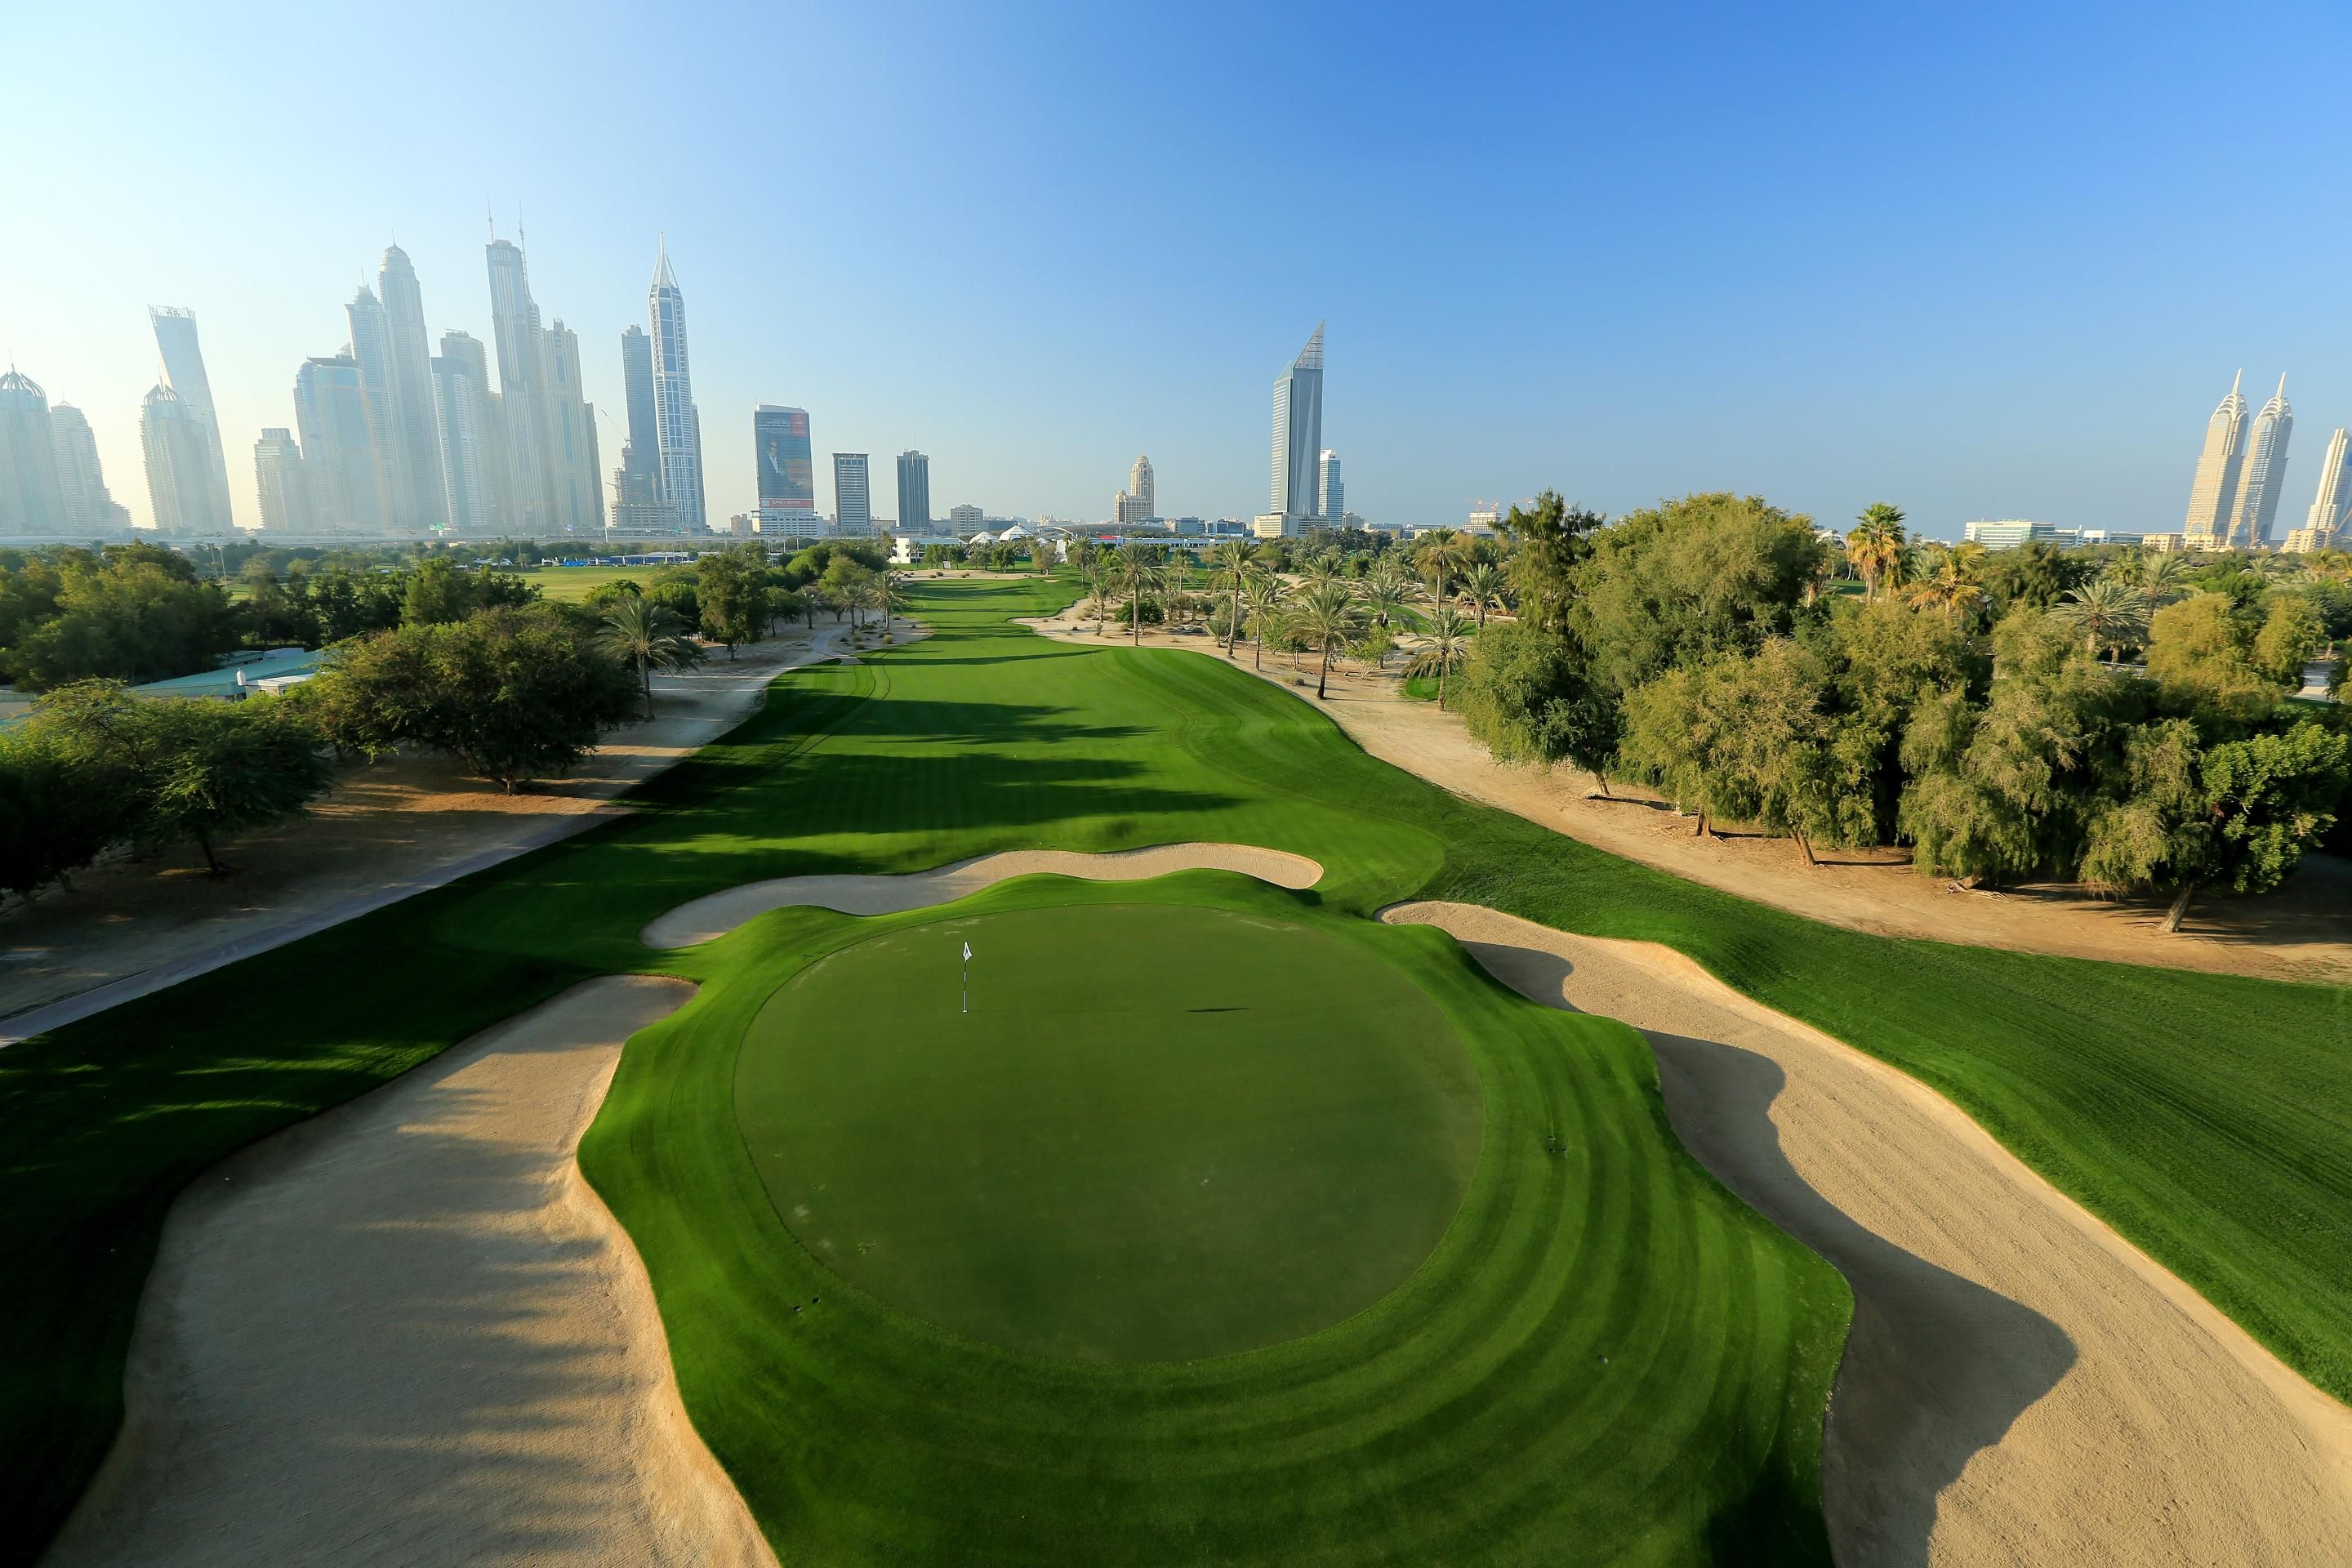 10th Hole On The Majlis Golf Course At Emirates Golf Club, Dubai, UAE